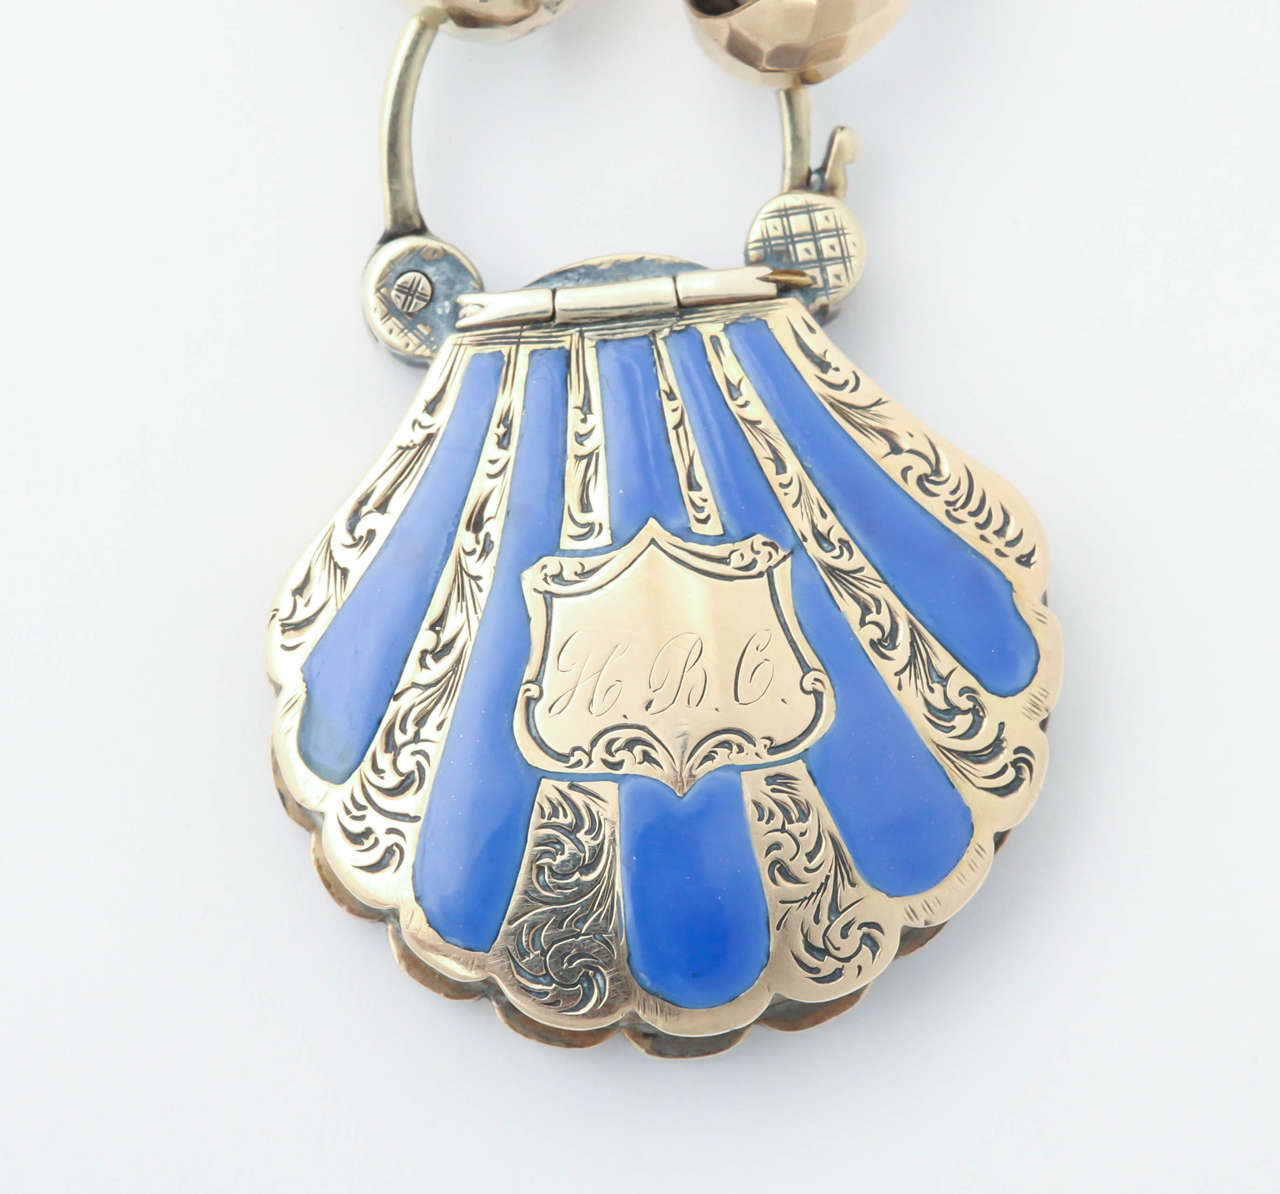 Victorian Snake Chain with a Scallop Shell Locket 4